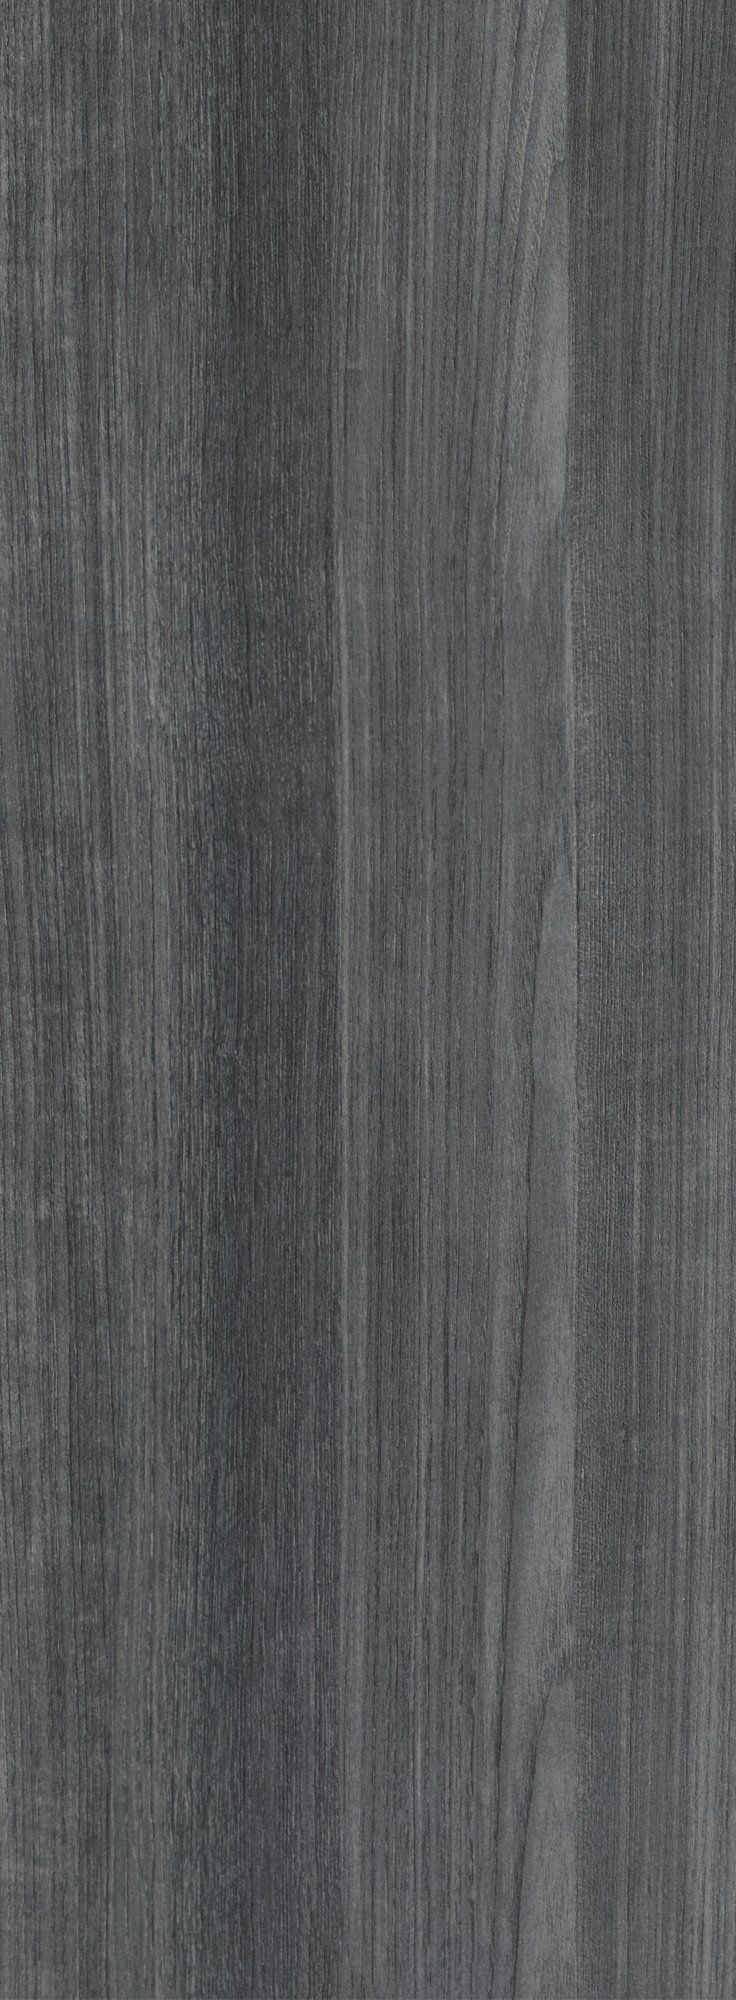 Storm Teakwood. One of 32 new designs.   Meet SurfaceSet® 2018 by Formica Corporation. Three dynamic and inviting palettes of creative contrasts, pushing the boundaries of calm to bold, organic to elegant, art to science. Bring beauty, durability and originality to your vision.   Get free samples of the Storm Teakwood by clicking through   #formicalaminate #SurfaceSet2018 #design #newproducts #interiordesign #inspiration #architecture #plam